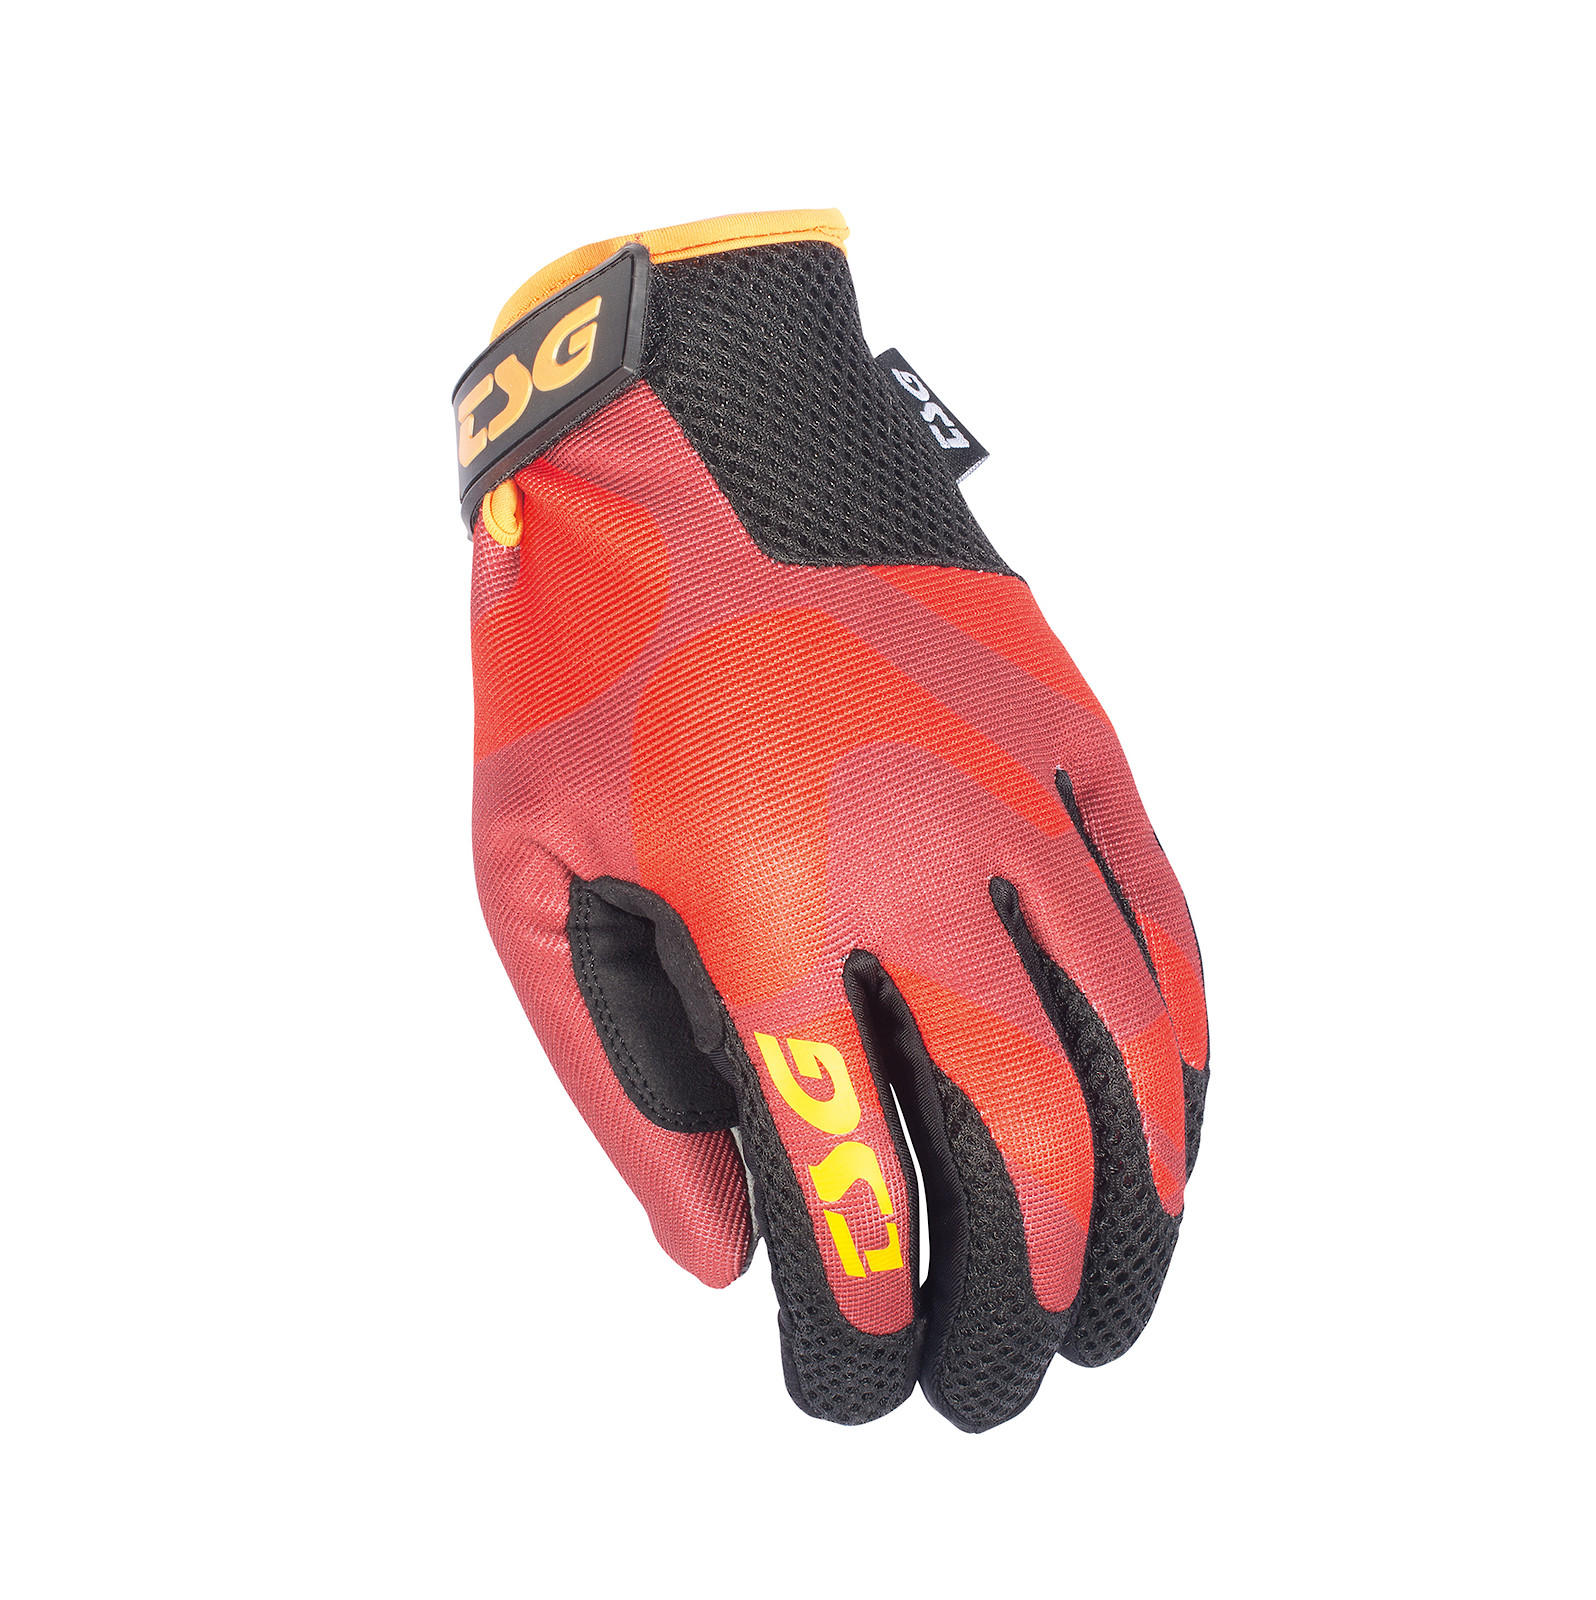 TSG Patrol Glove SP3